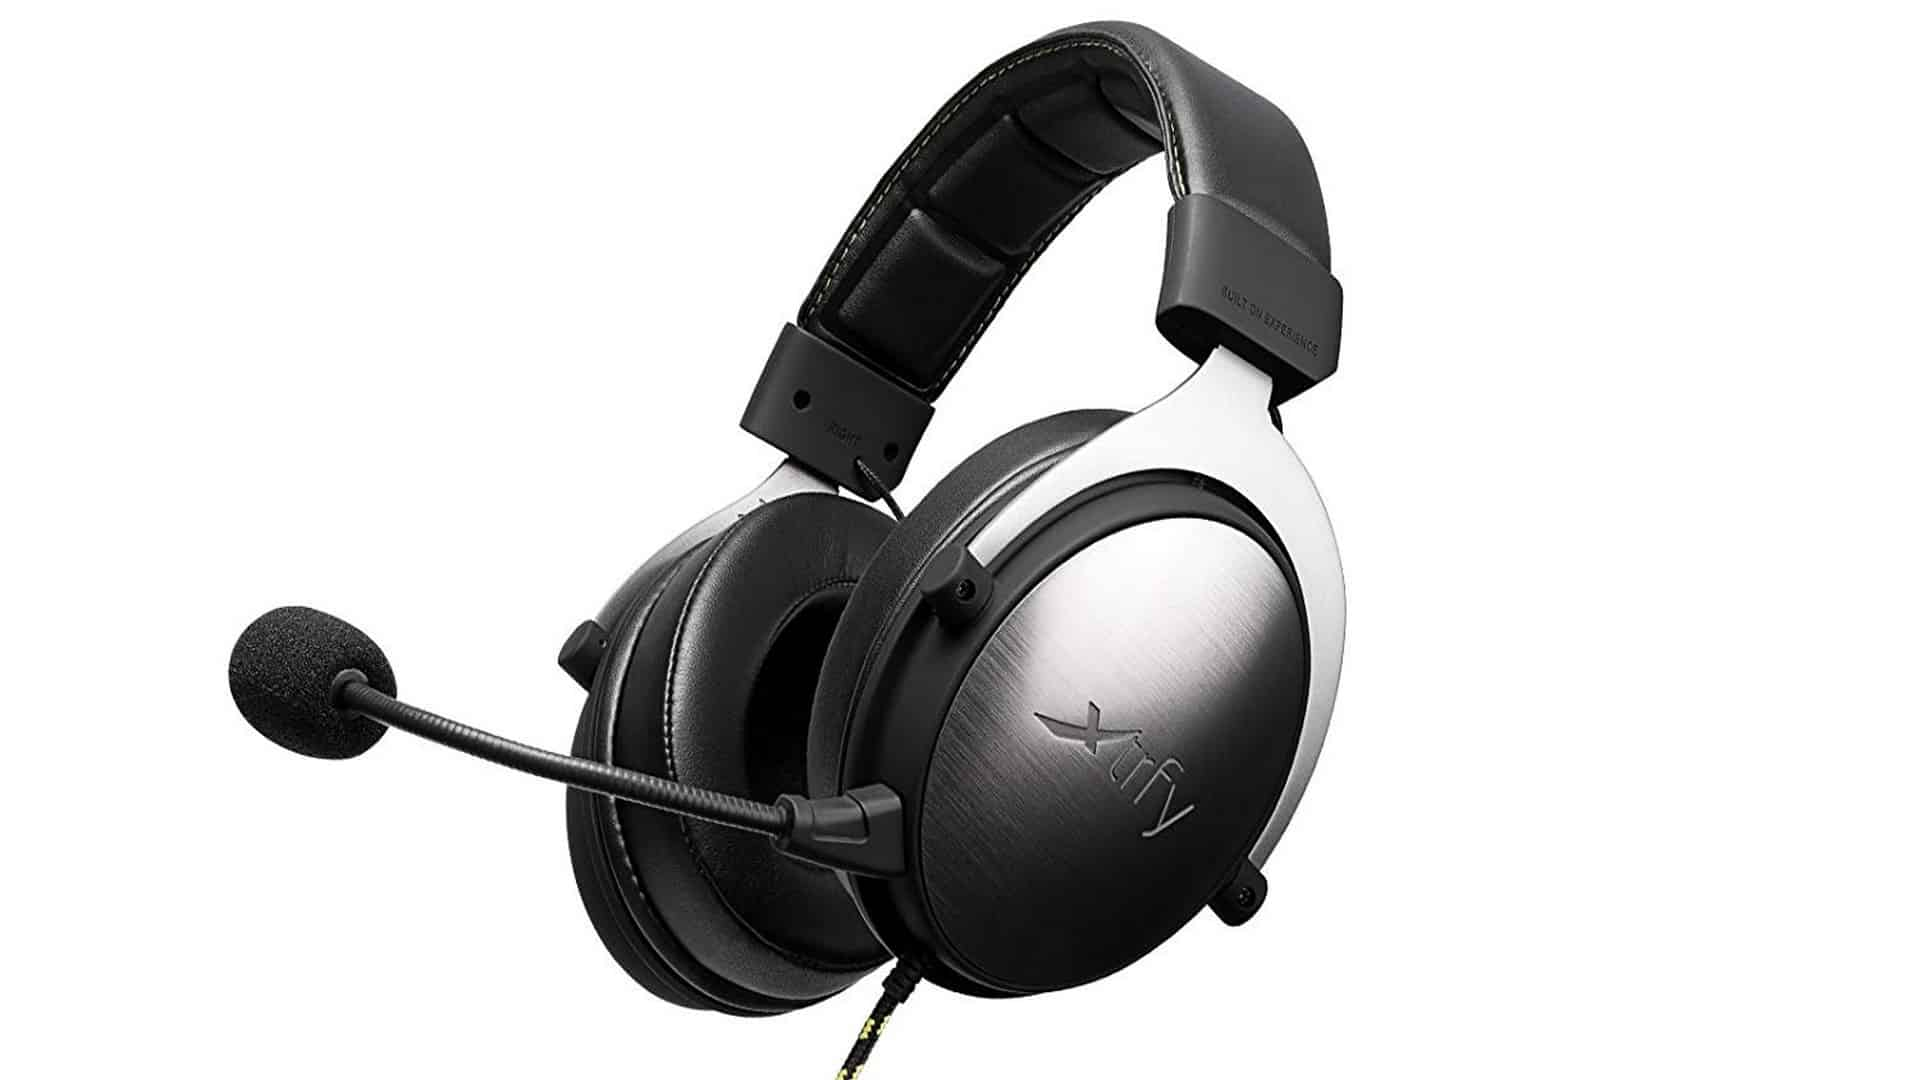 XTRFY H1 Pro Gaming Headset - Review